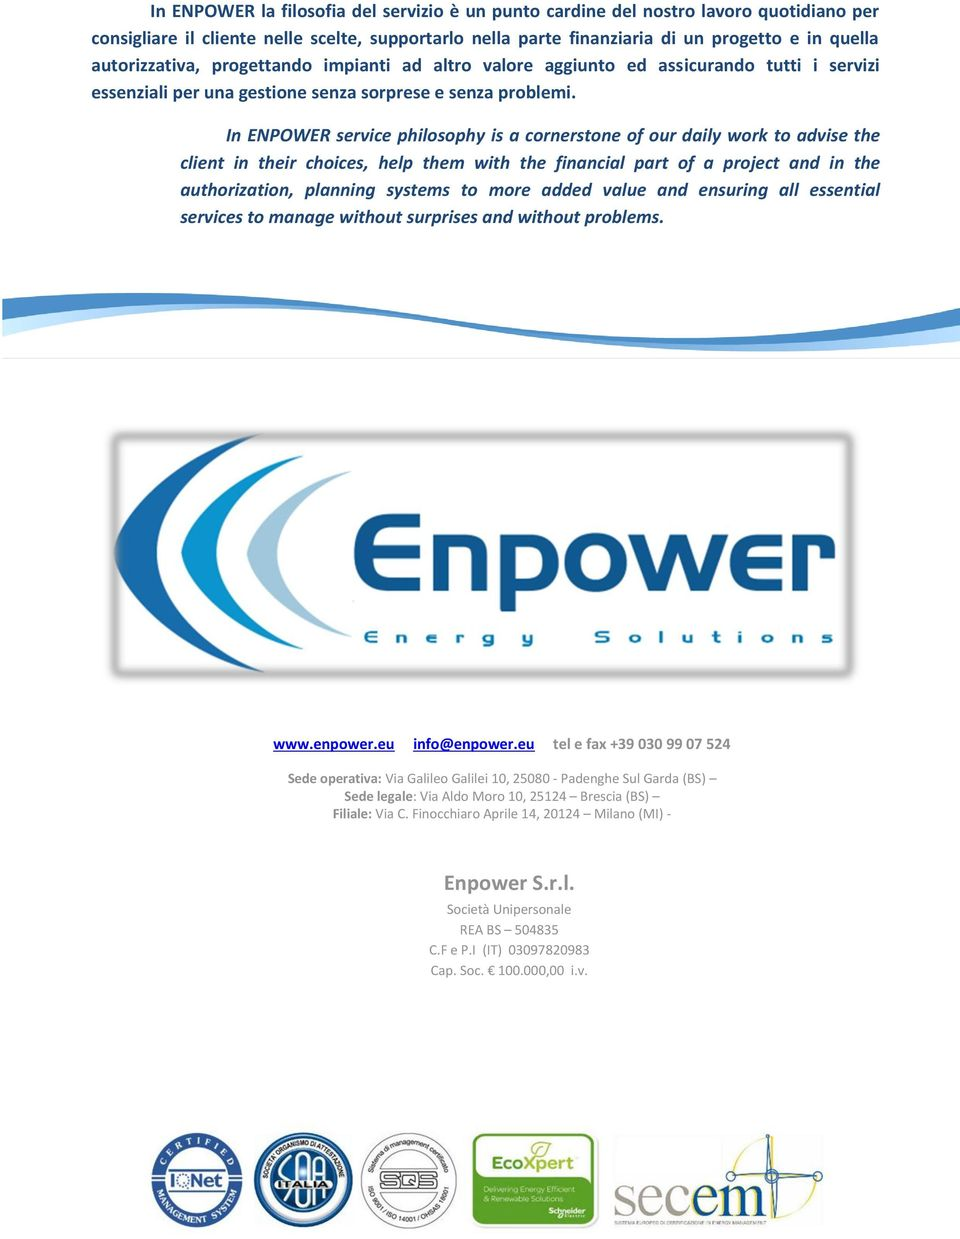 In ENPOWER service philosophy is a cornerstone of our daily work to advise the client in their choices, help them with the financial part of a project and in the authorization, planning systems to